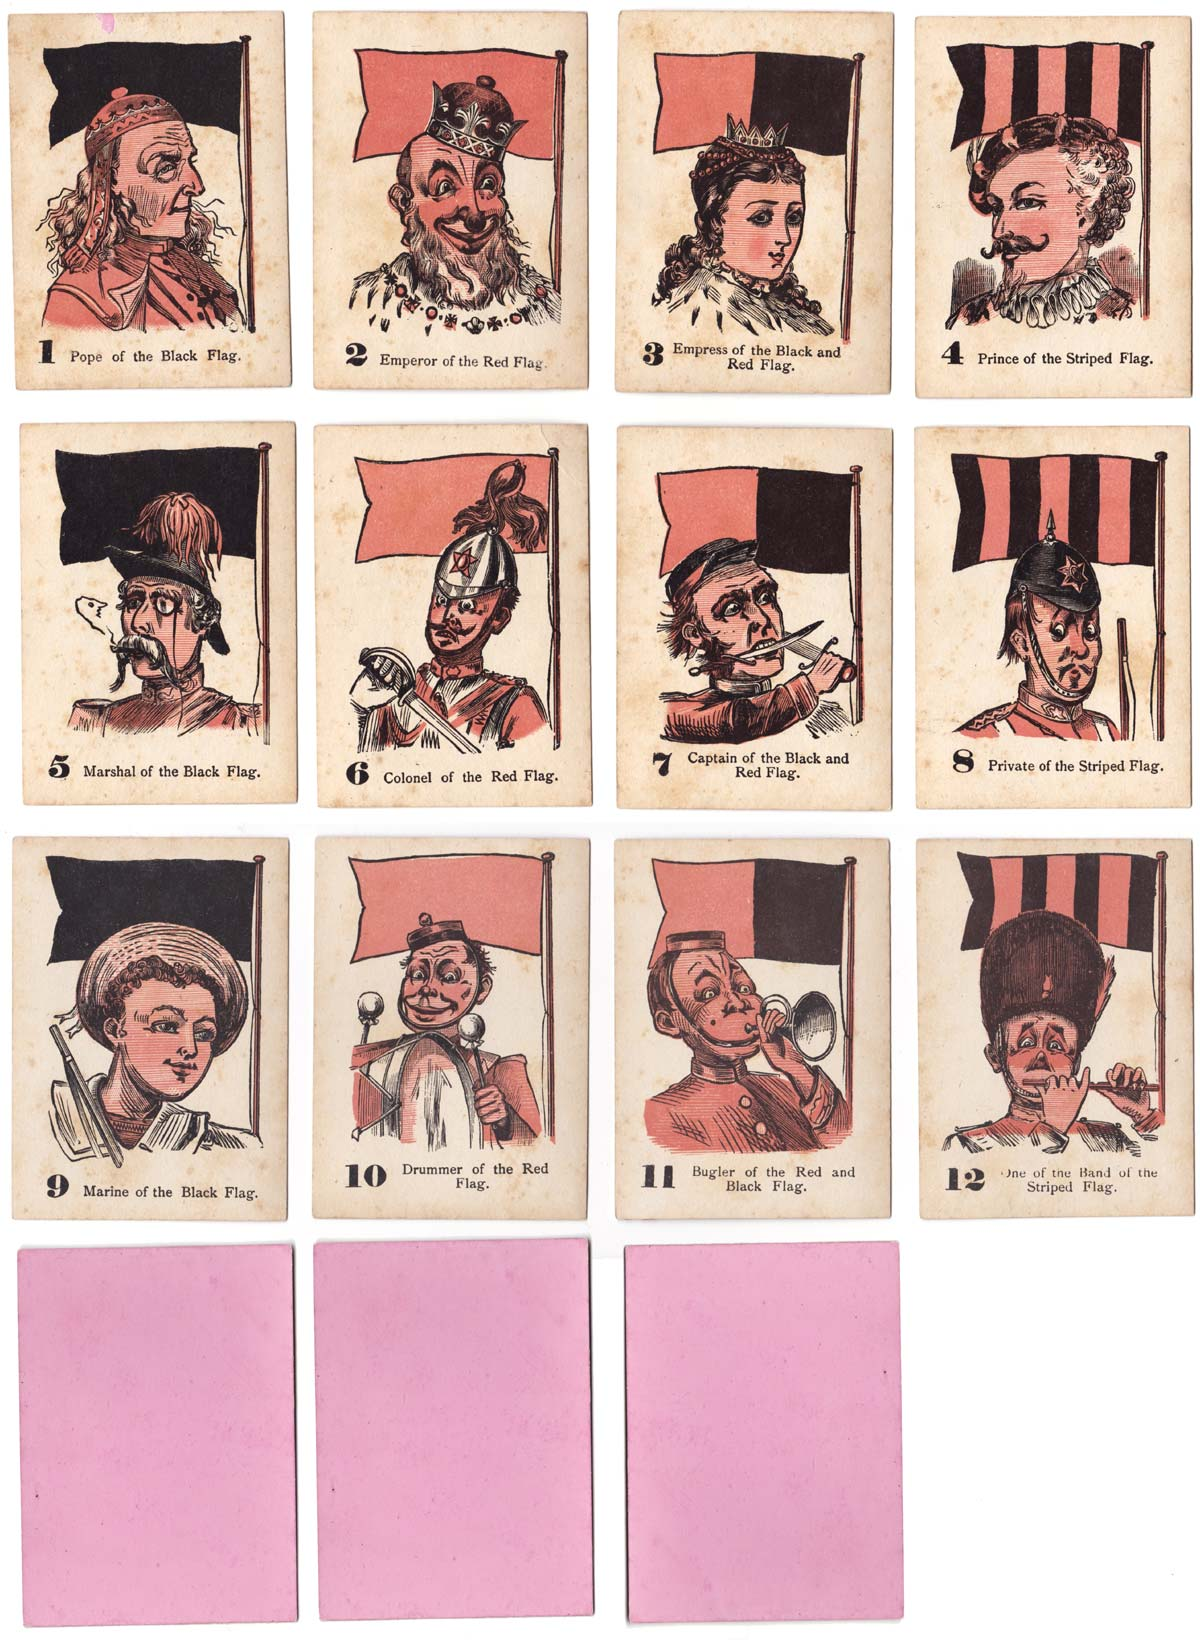 The Game of Four Flags published by Multum in Parvo, from 1884